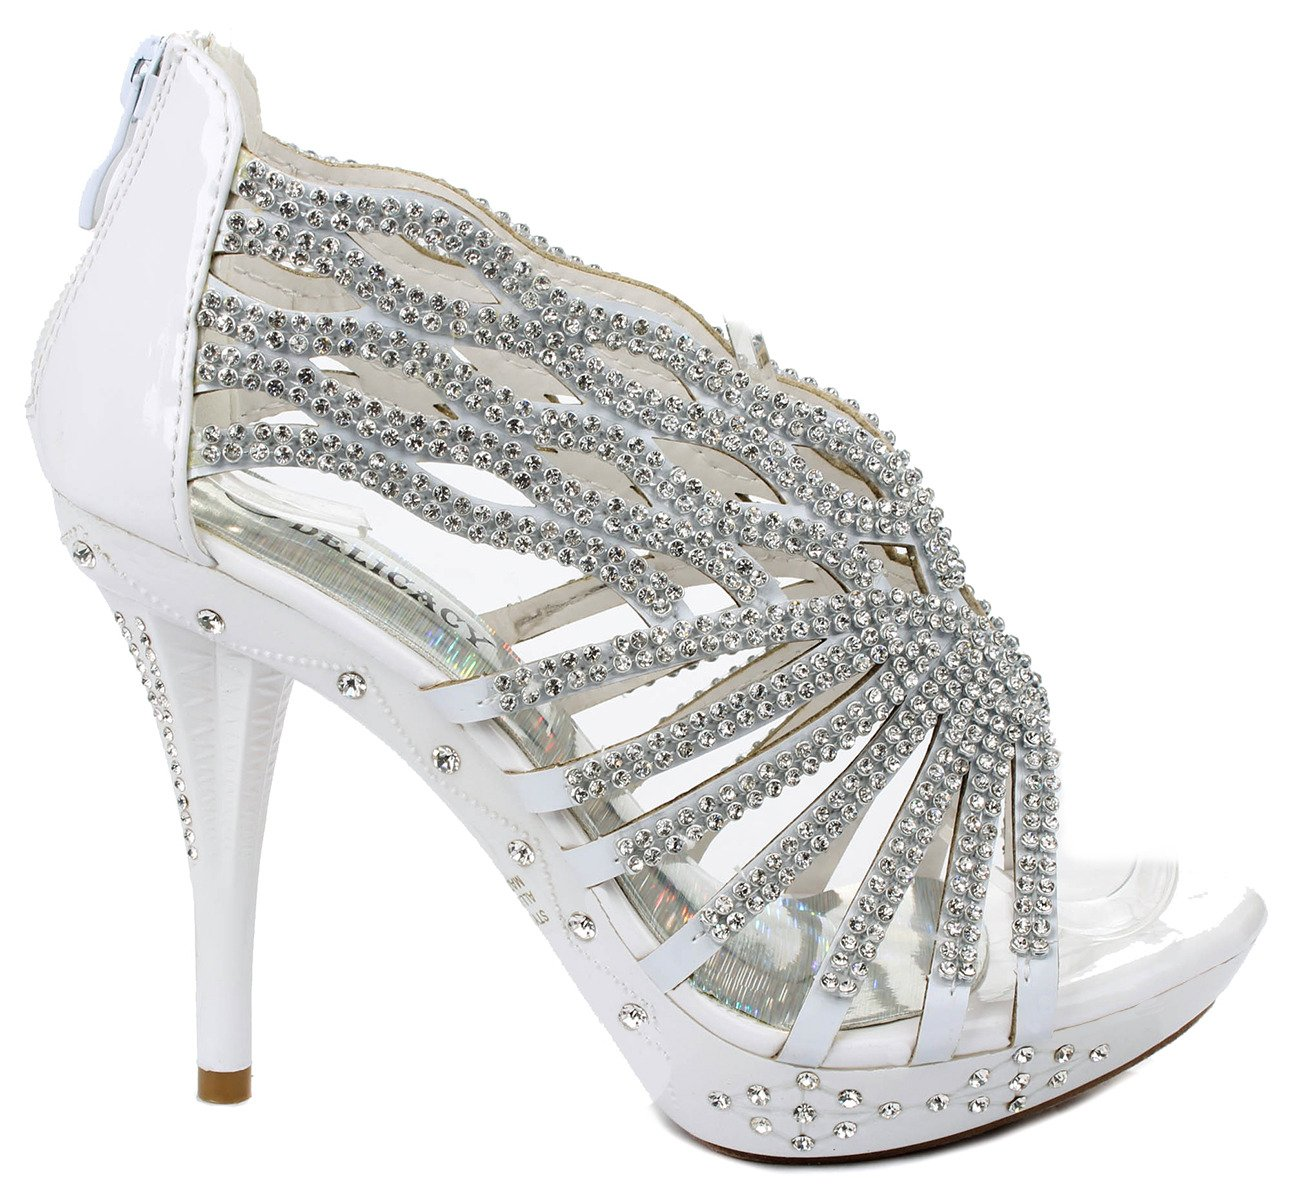 Delicacy Decent76 Dazzling Rhinestone Wave Cut Out Strappy Evening Dress High Heel Pump Sandals B00W4WYO54 5 B(M) US|White